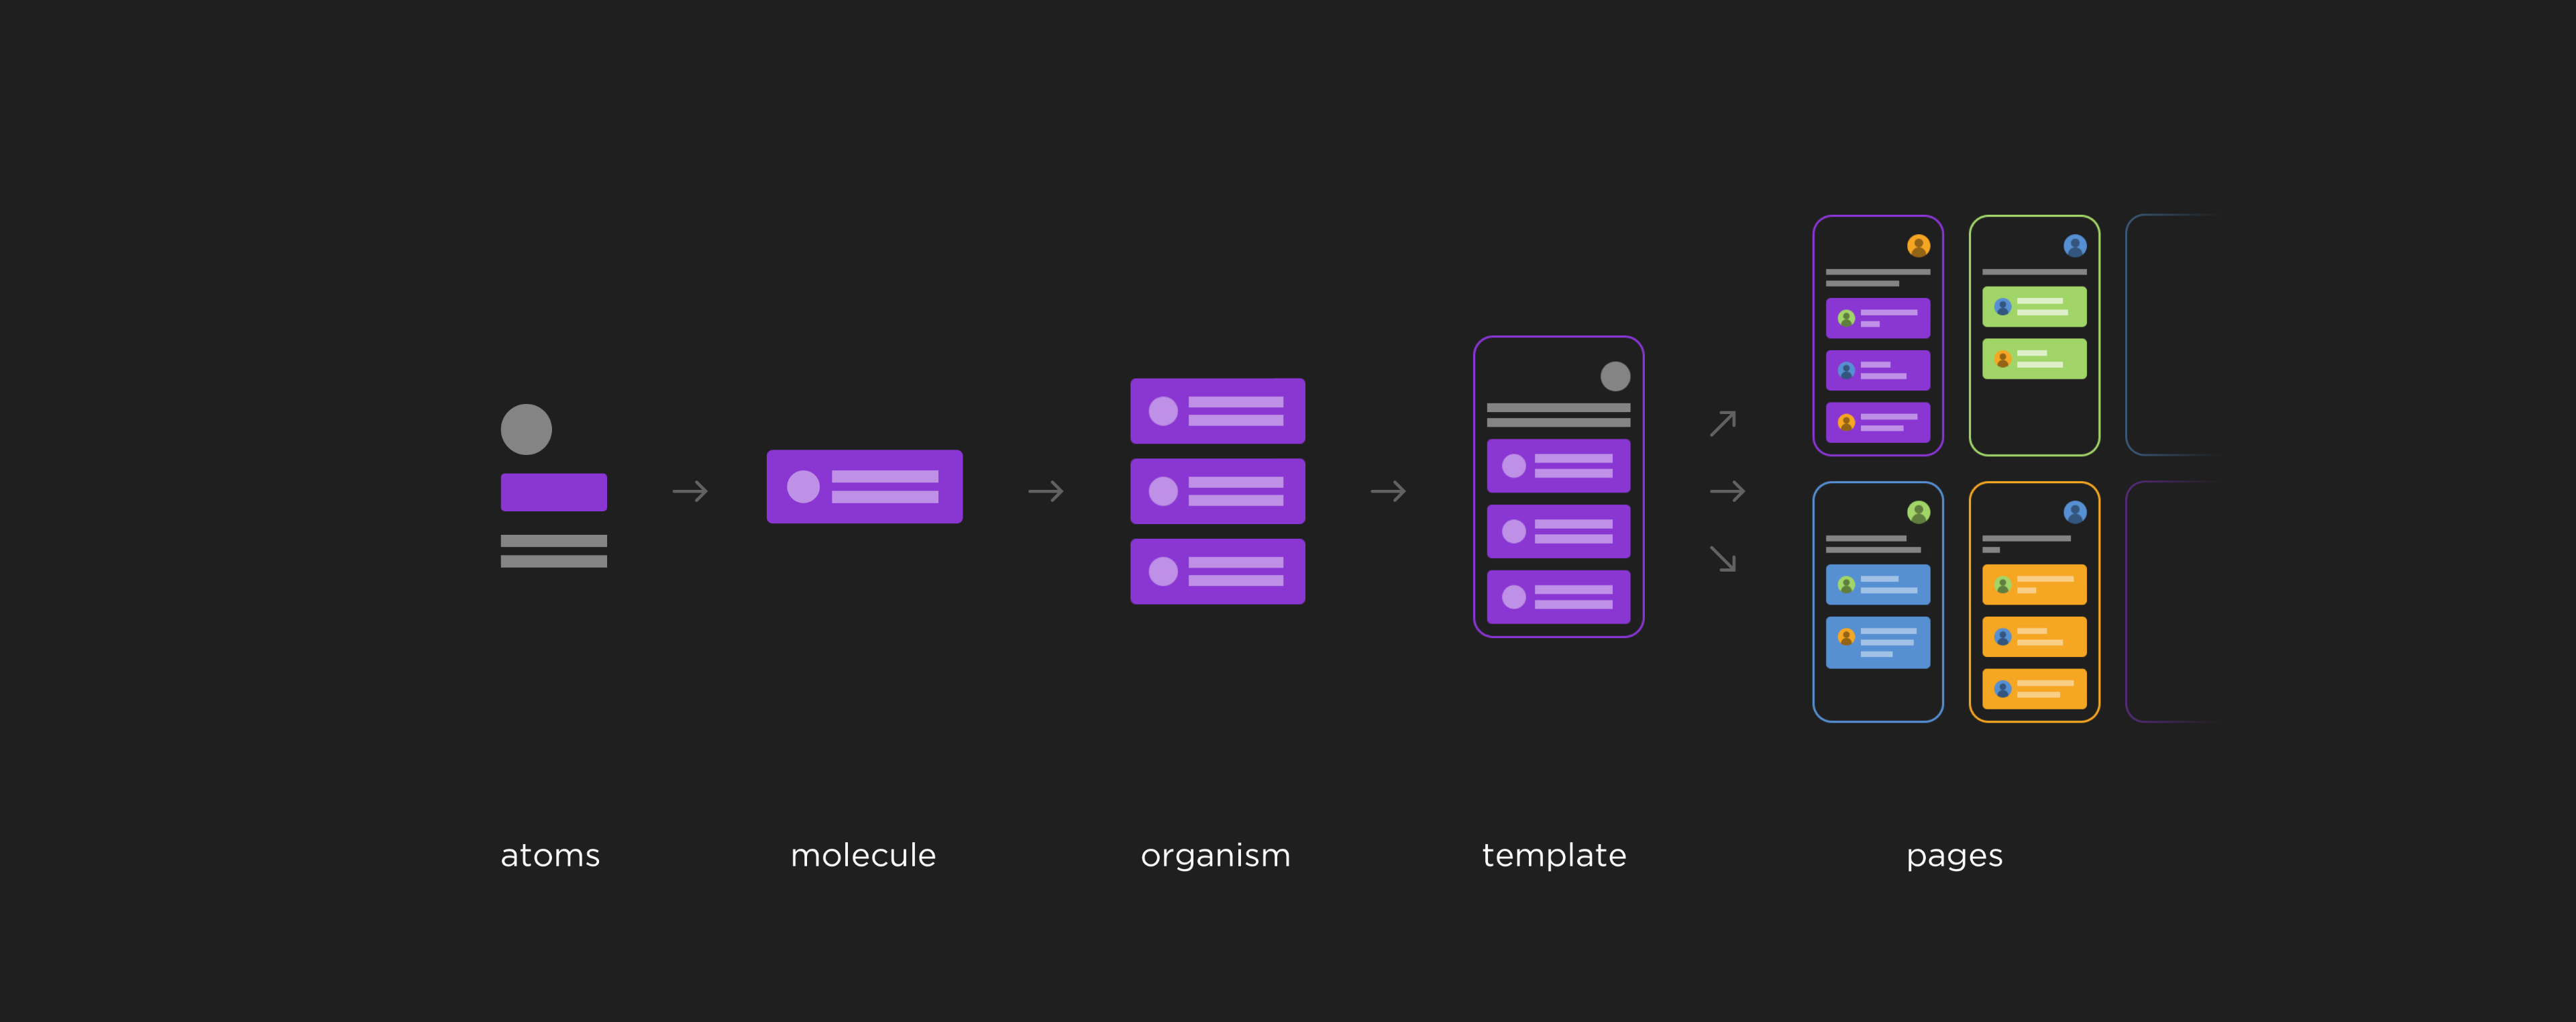 Building Design Systems with Atomic Design - Muzli - Design